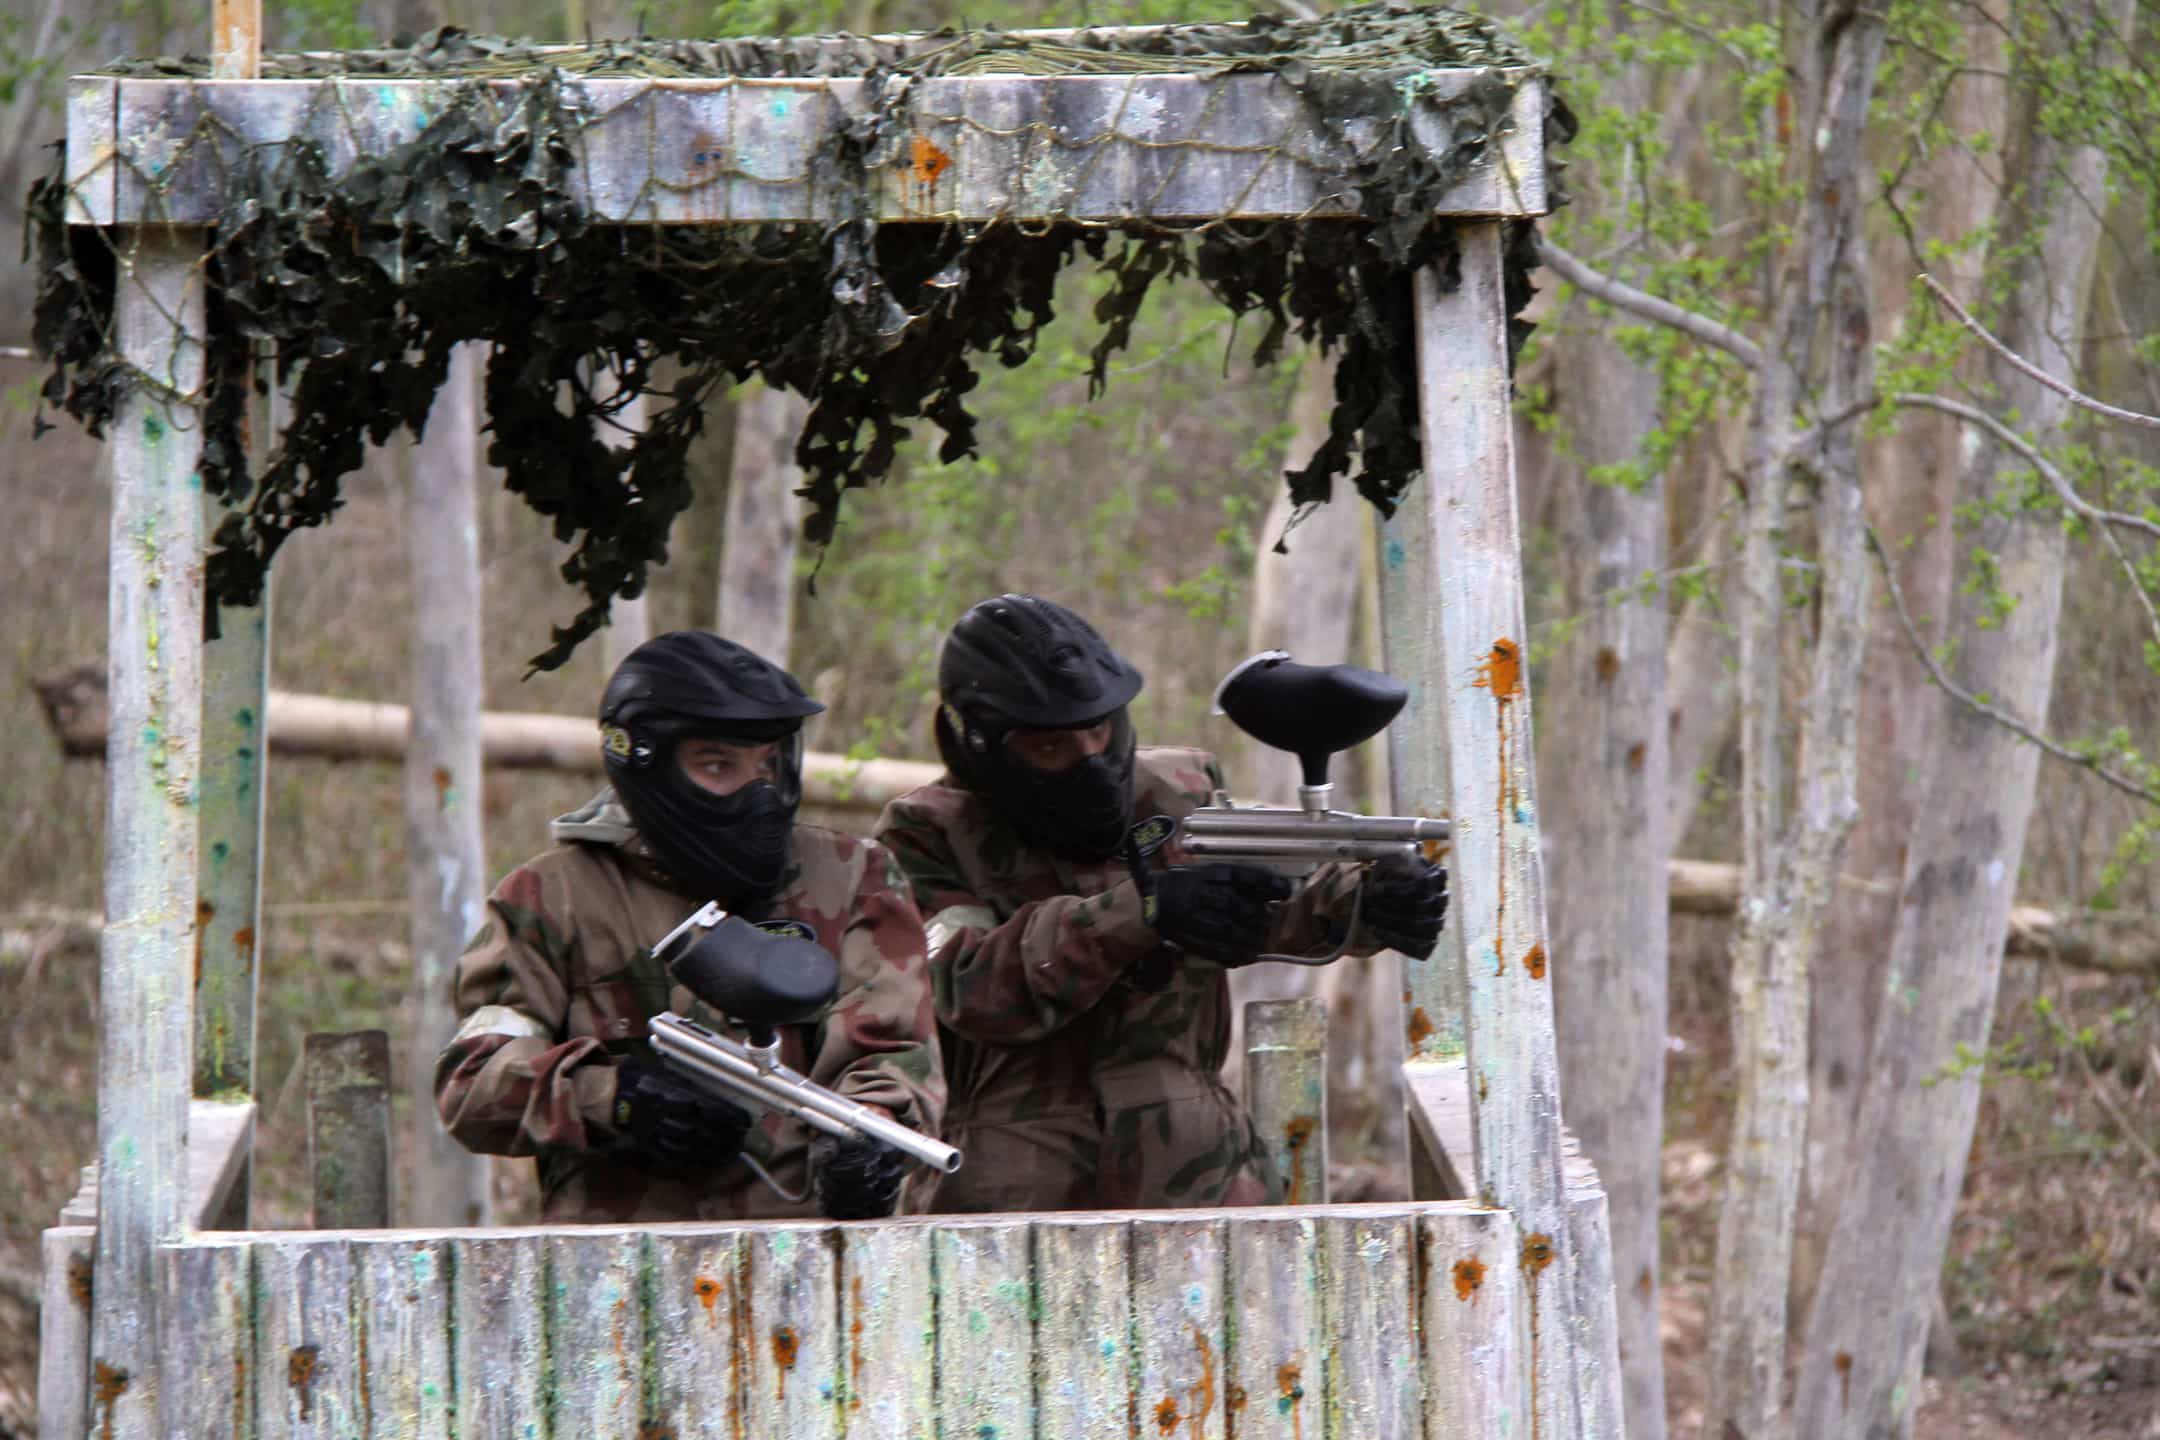 Two Kids In Guard Tower at Paintball Cardiff